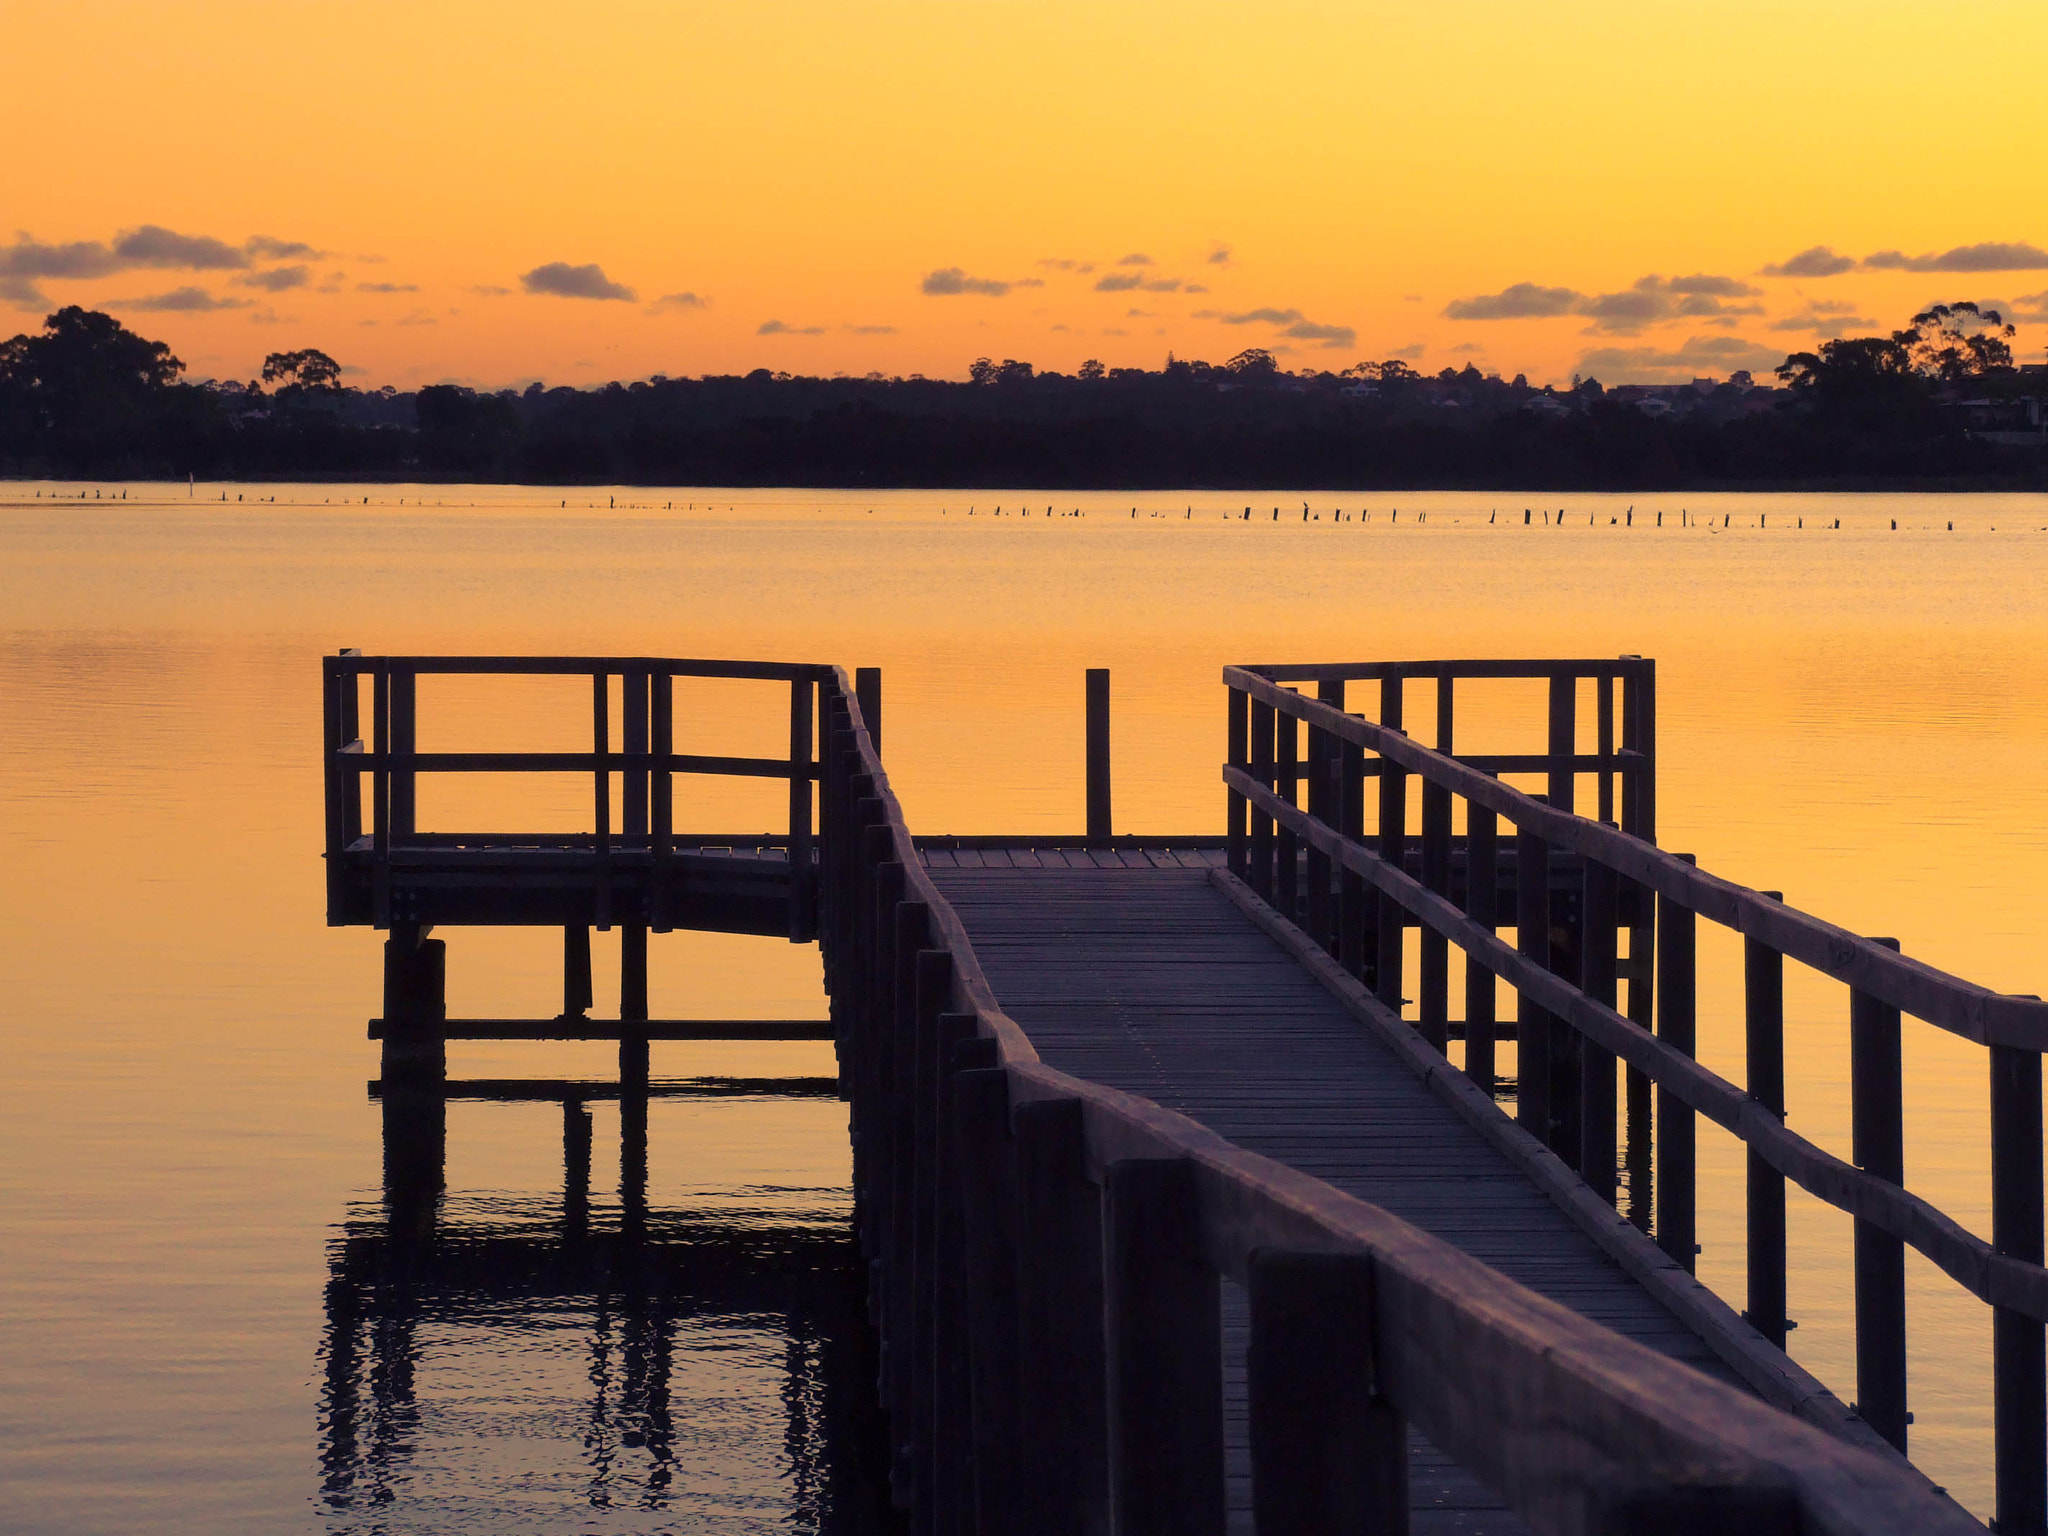 Photograph The Jetty by Karen Stackpole on 500px